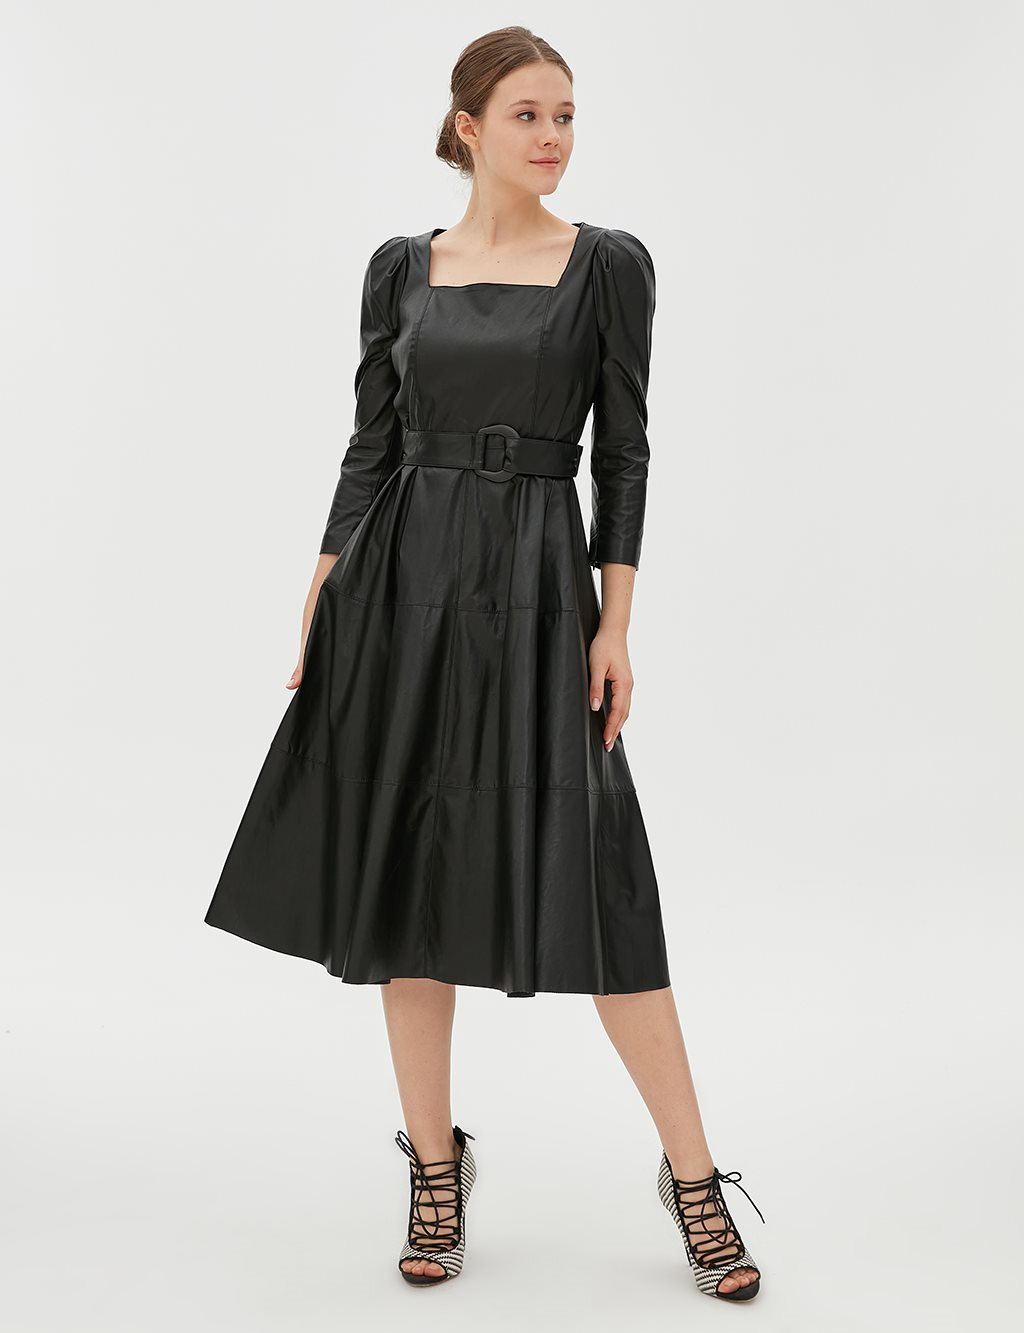 Middle Height Dress B20 23053 Black